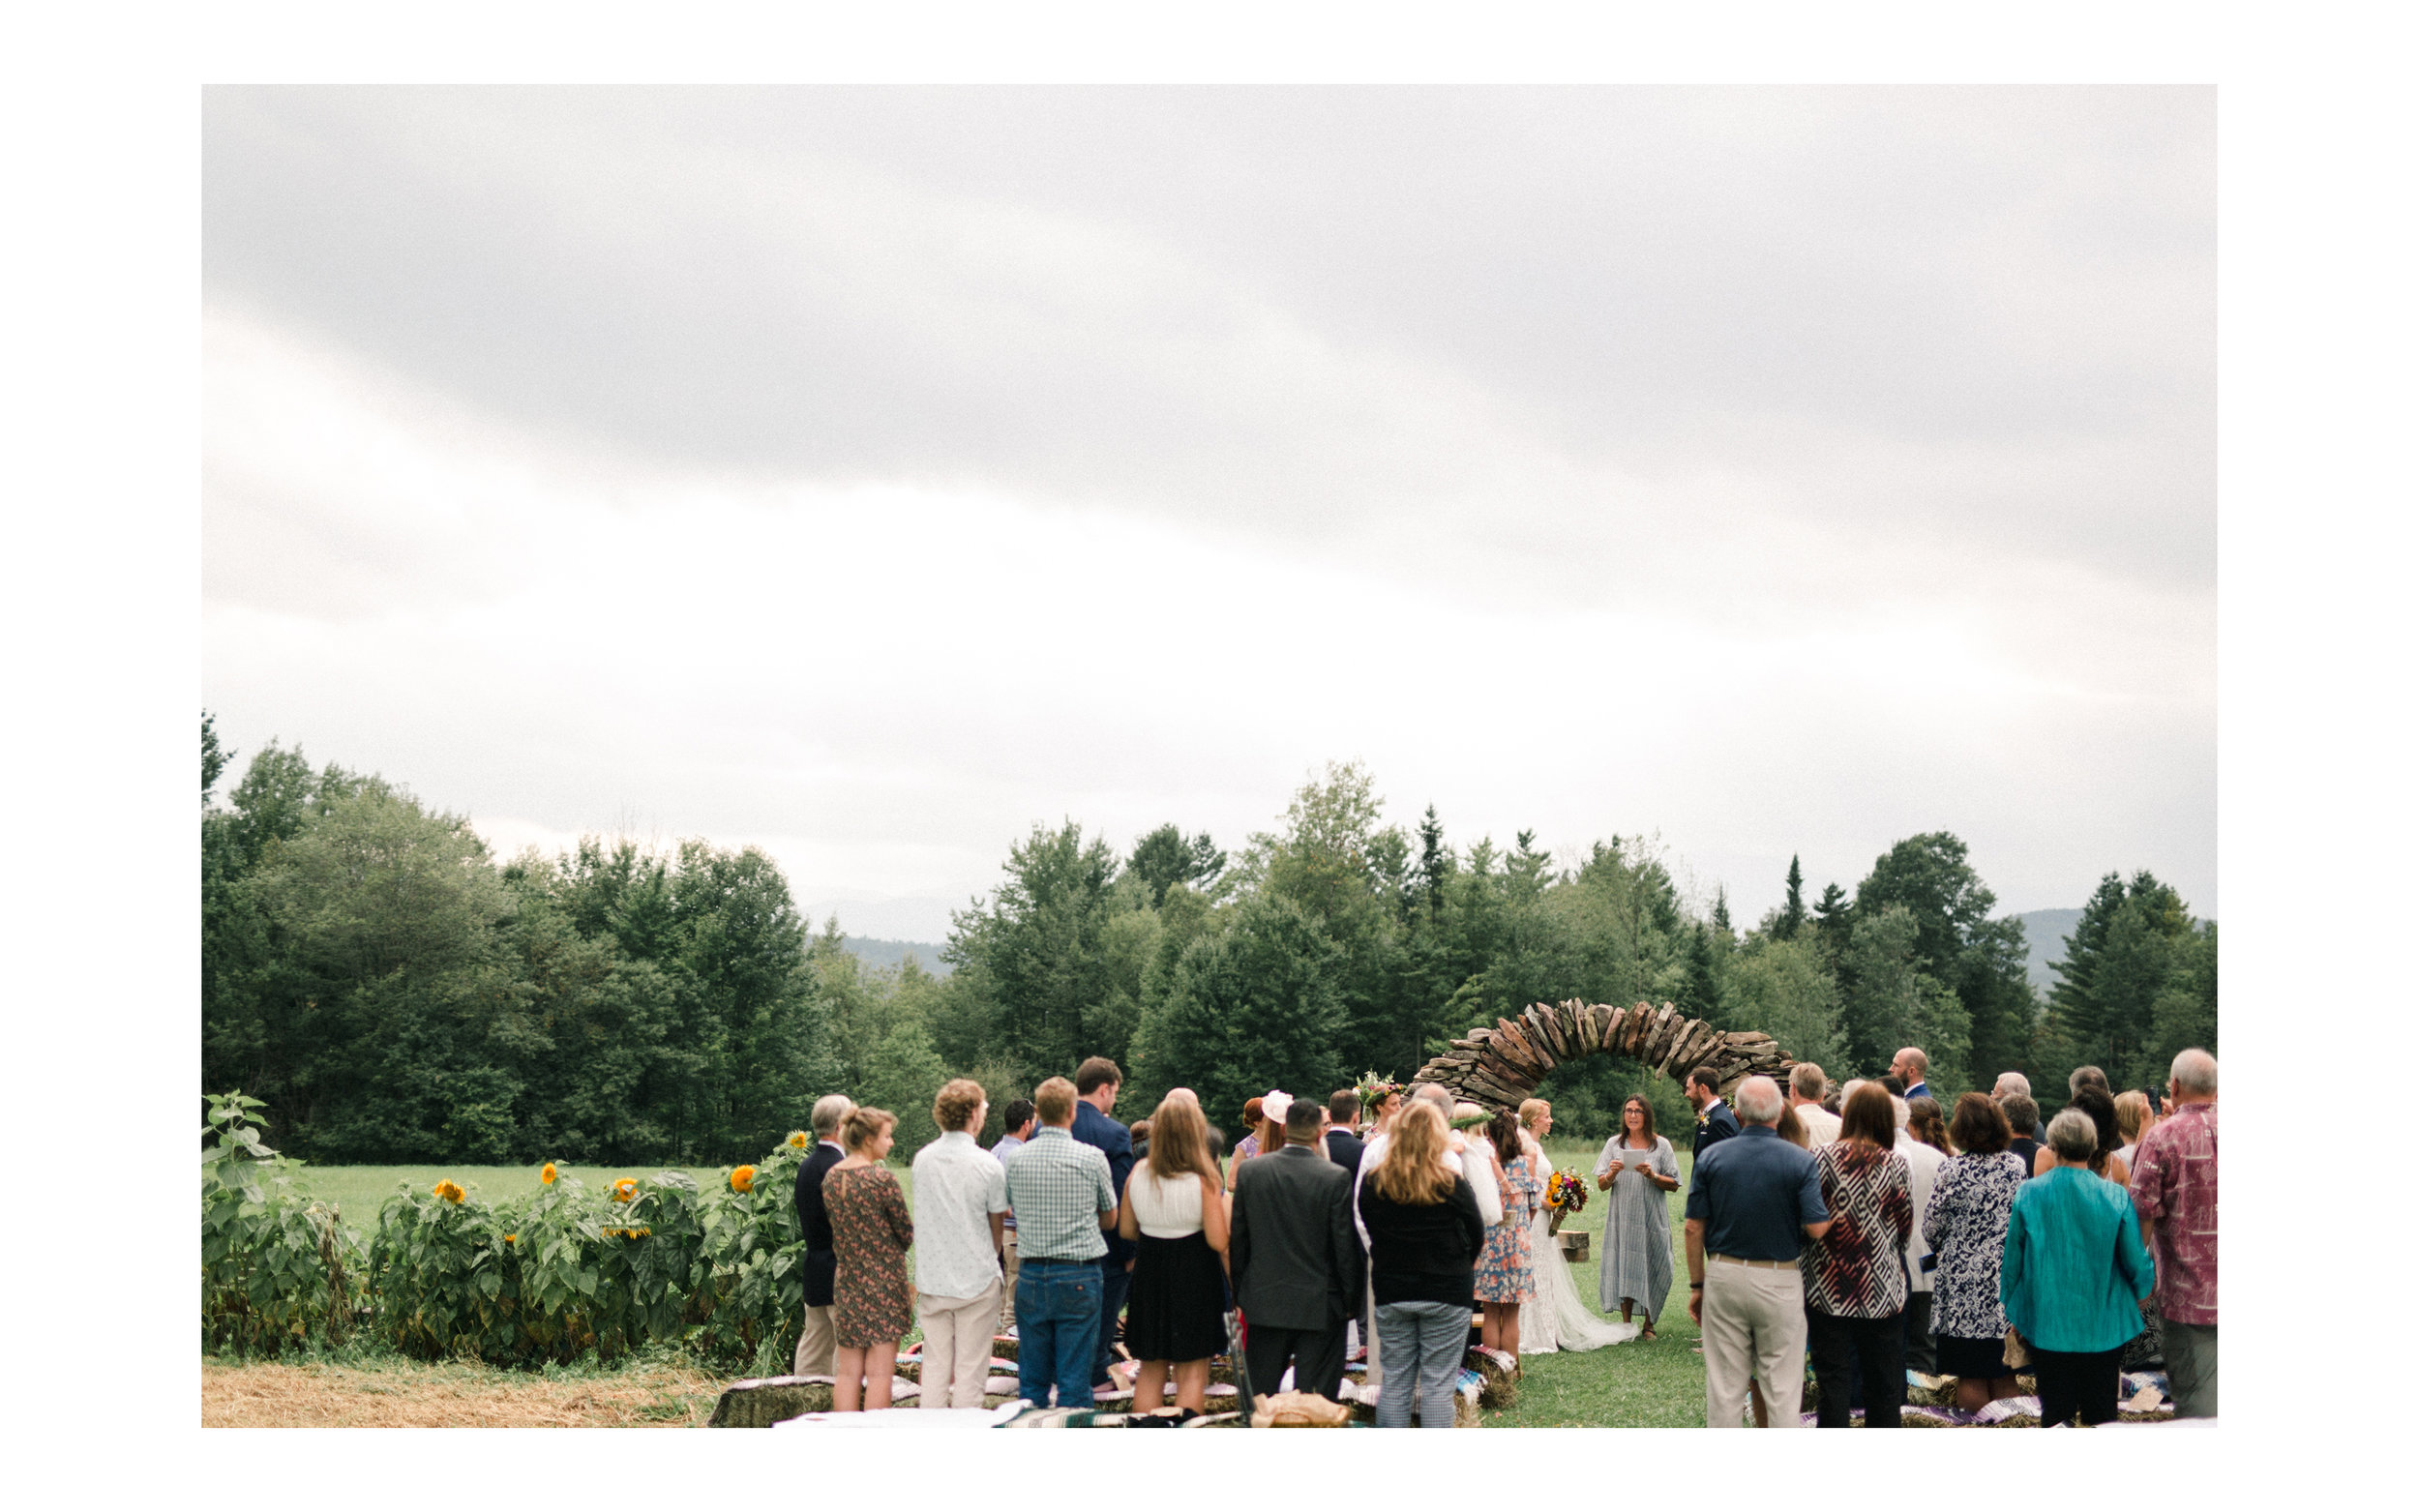 Stowe VT Farm Wedding Fine Art Wedding Photographer_Meg Haley Photographs_005.jpg